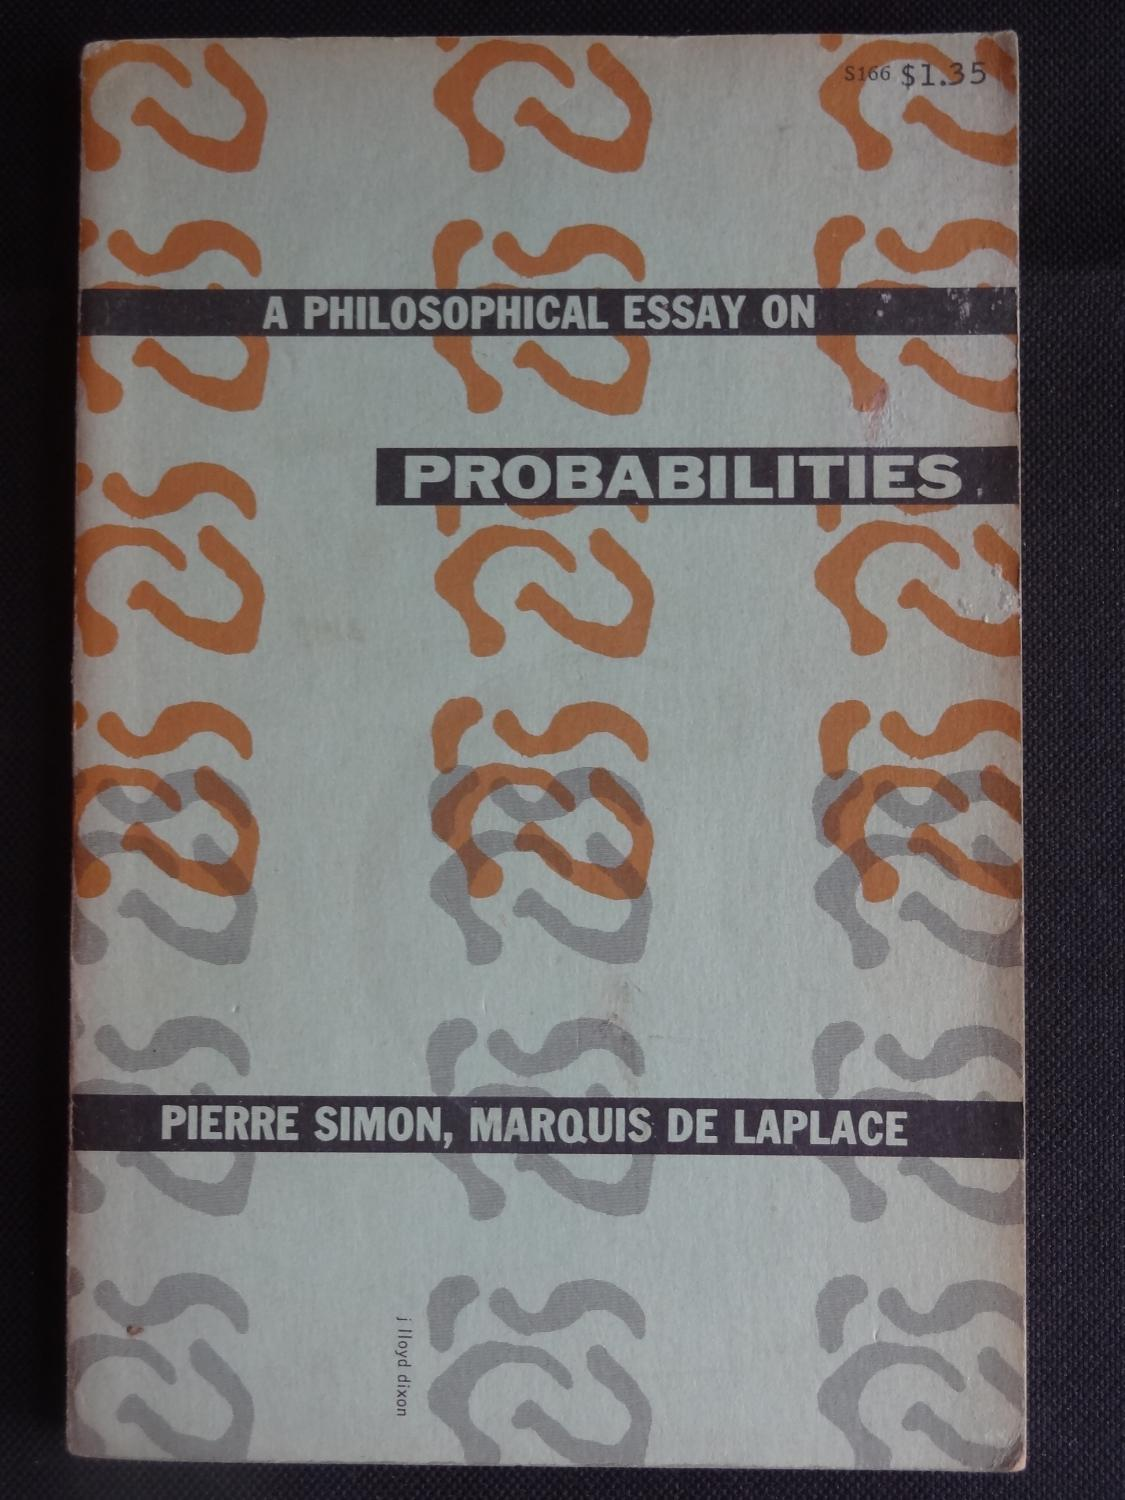 a philosophical essay on probabilities A philosophical essay on probabilities - entrust your paper to us and we will do our best for you original essays at affordable costs available here will turn your studying into delight experienced writers working in the service will fulfil your assignment within the deadline.